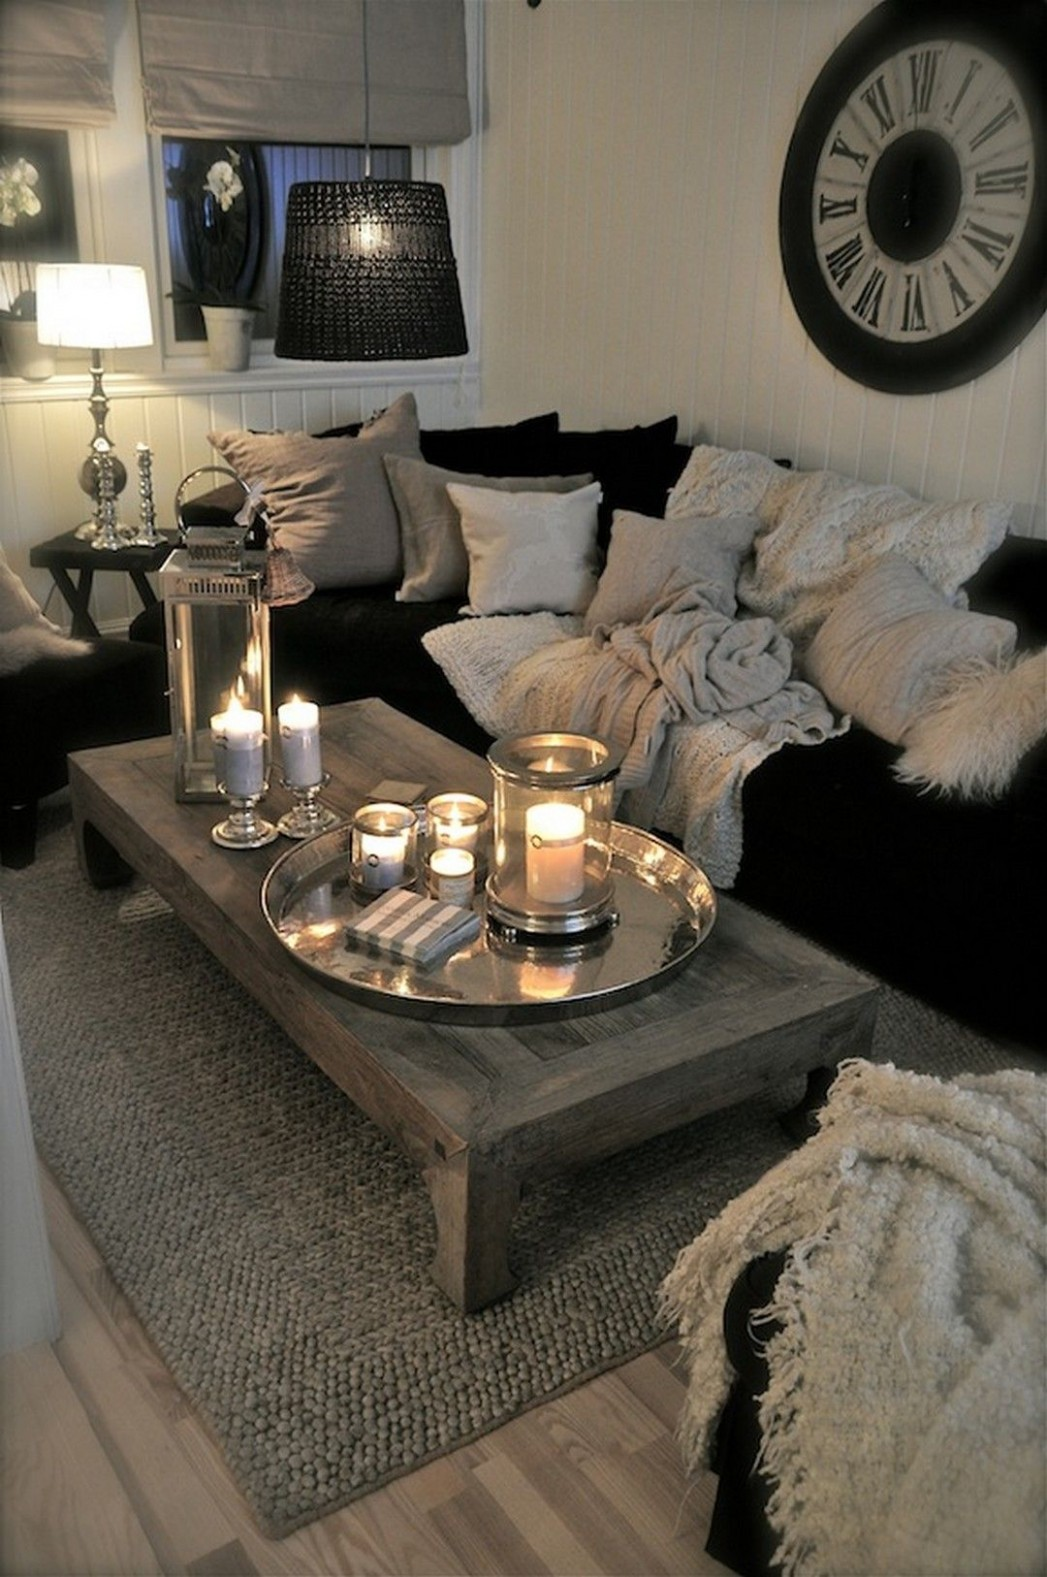 12 Easy DIY First Apartement Decorating Ideas - Architecturehd  - Apartment Decorating Ideas Ideas